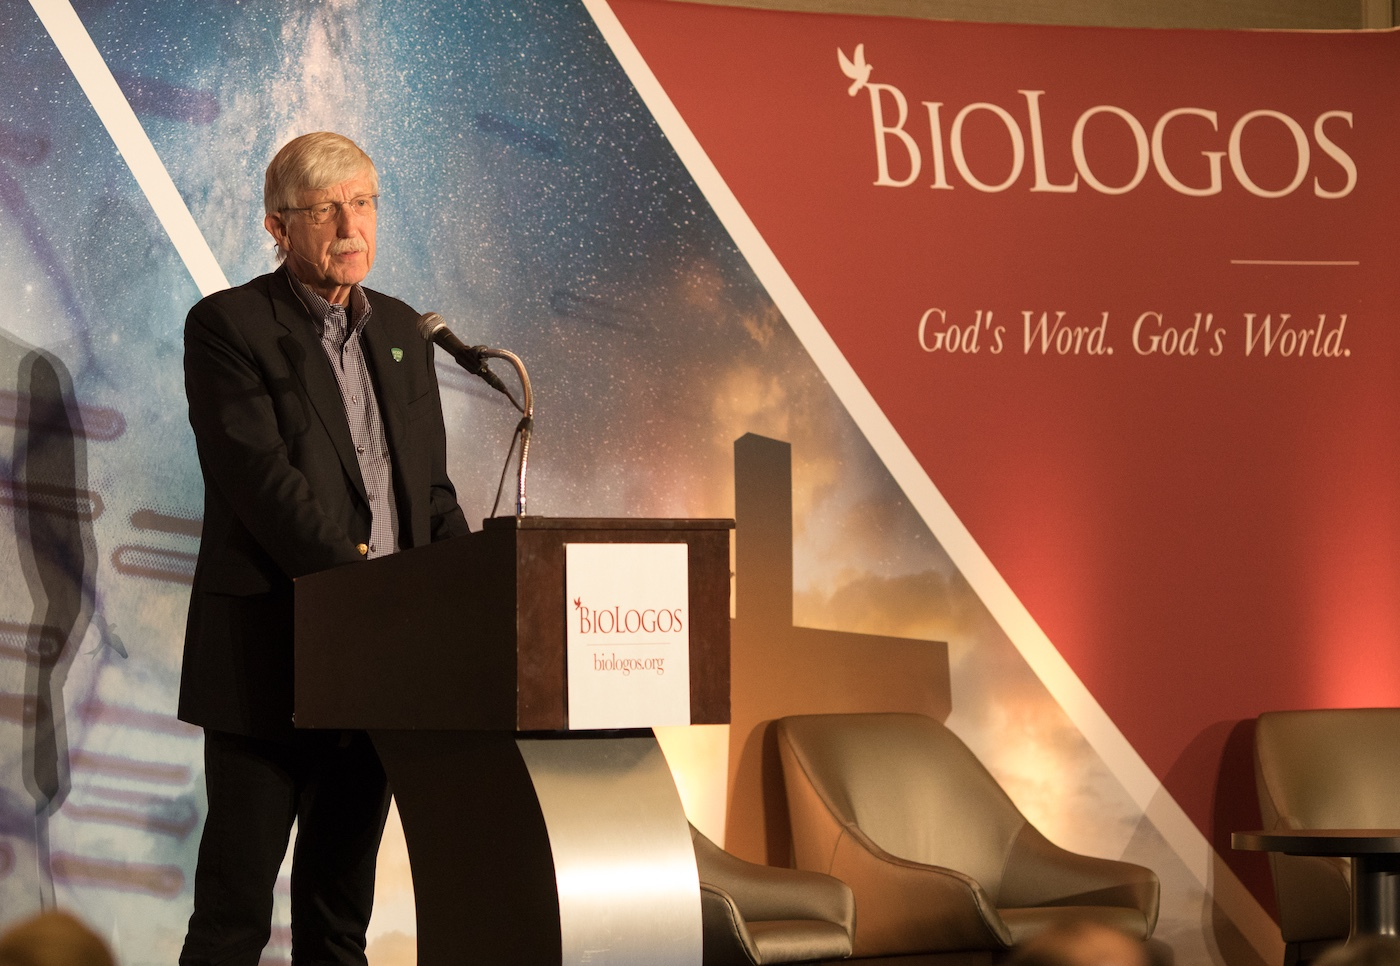 Francis Collins speaks at the BioLogos Conference